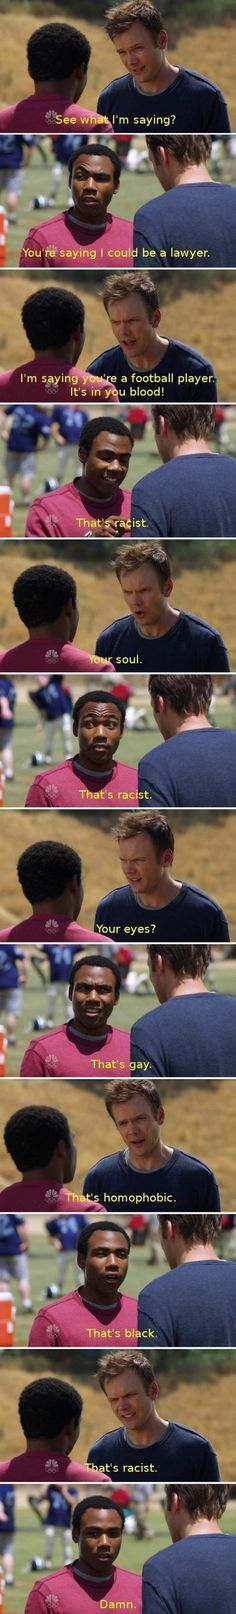 Possibly the funniest show